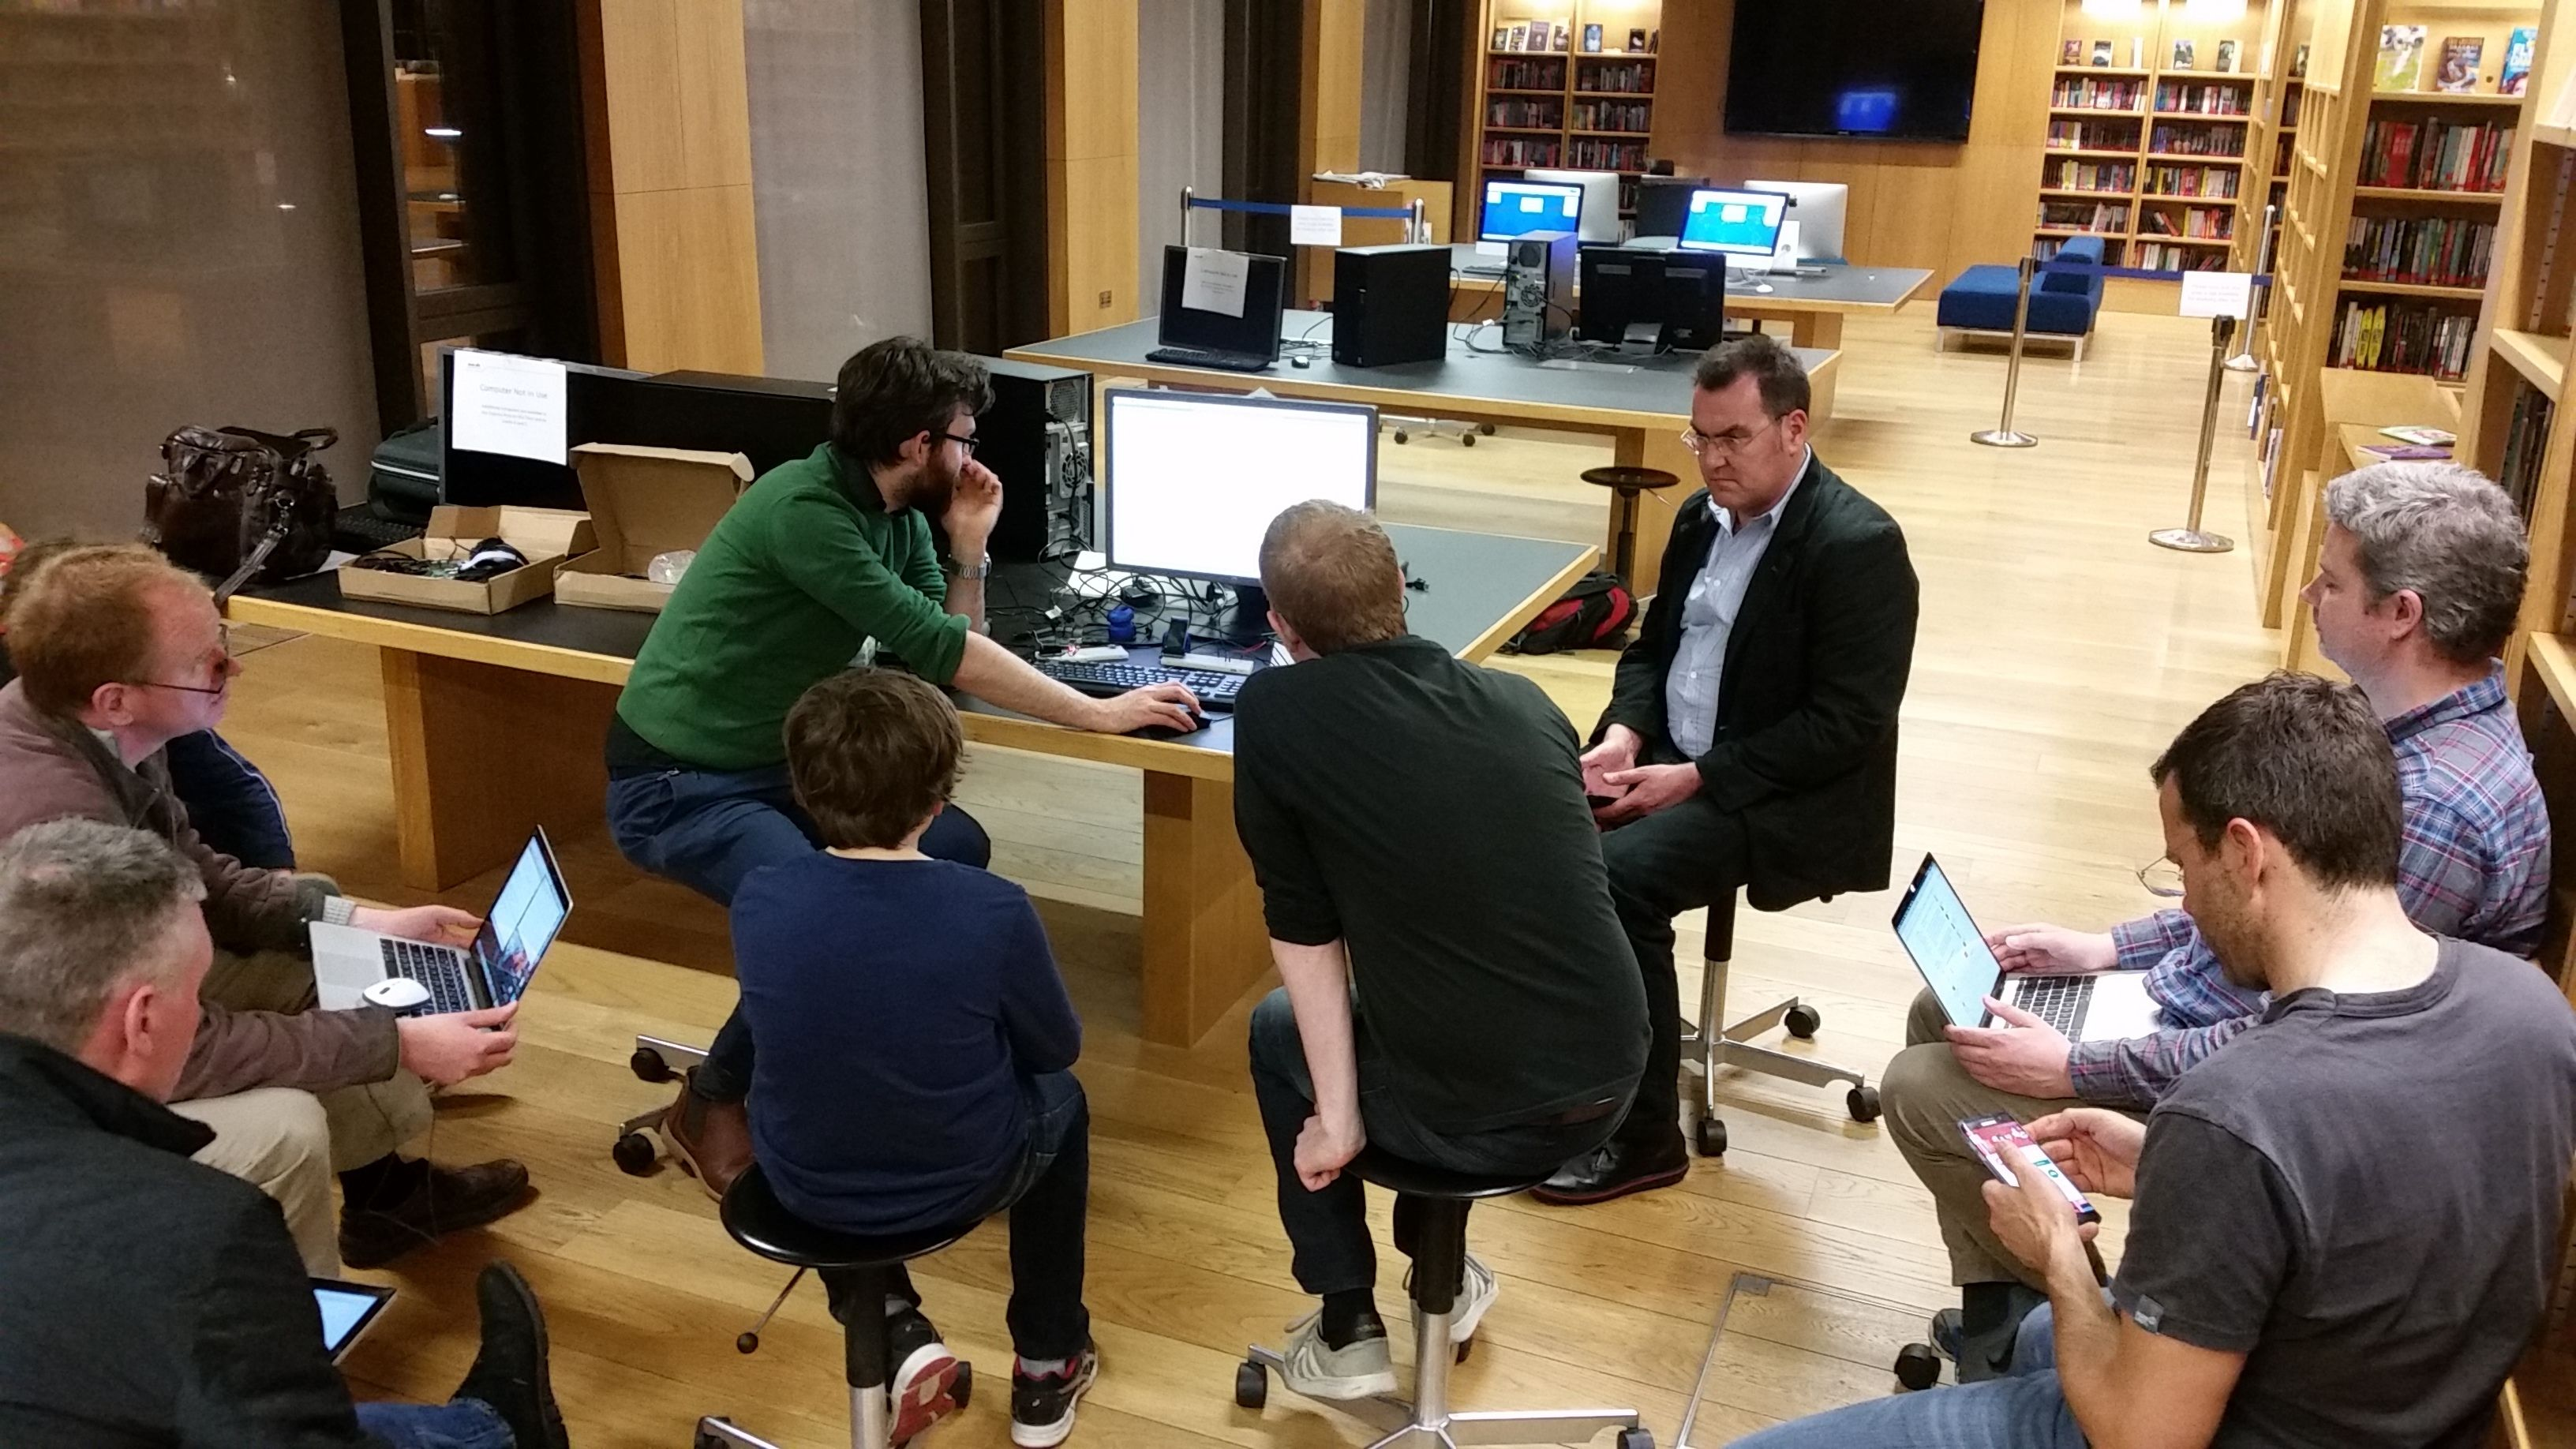 Dun Laoghaire LexIcon Library Maker Drop in evenings